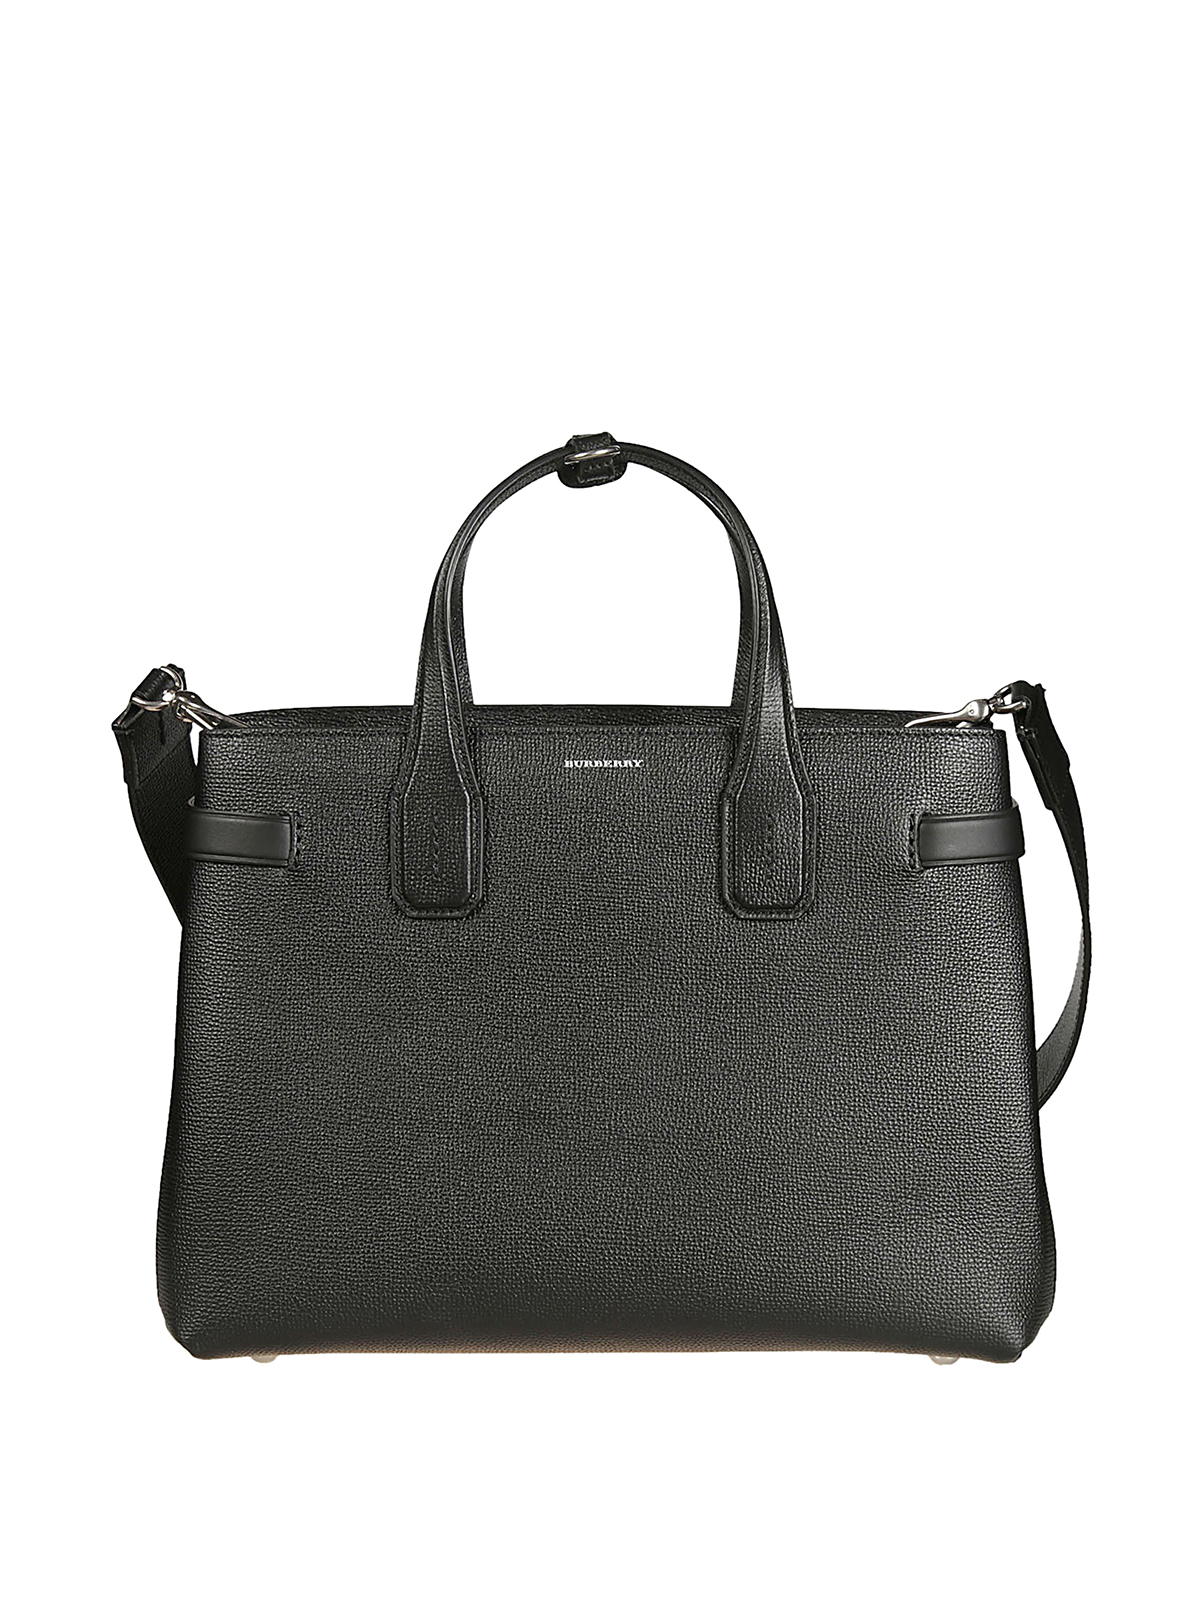 7f5e940253d5 Burberry - The Medium Banner black leather tote - totes bags - 8006323